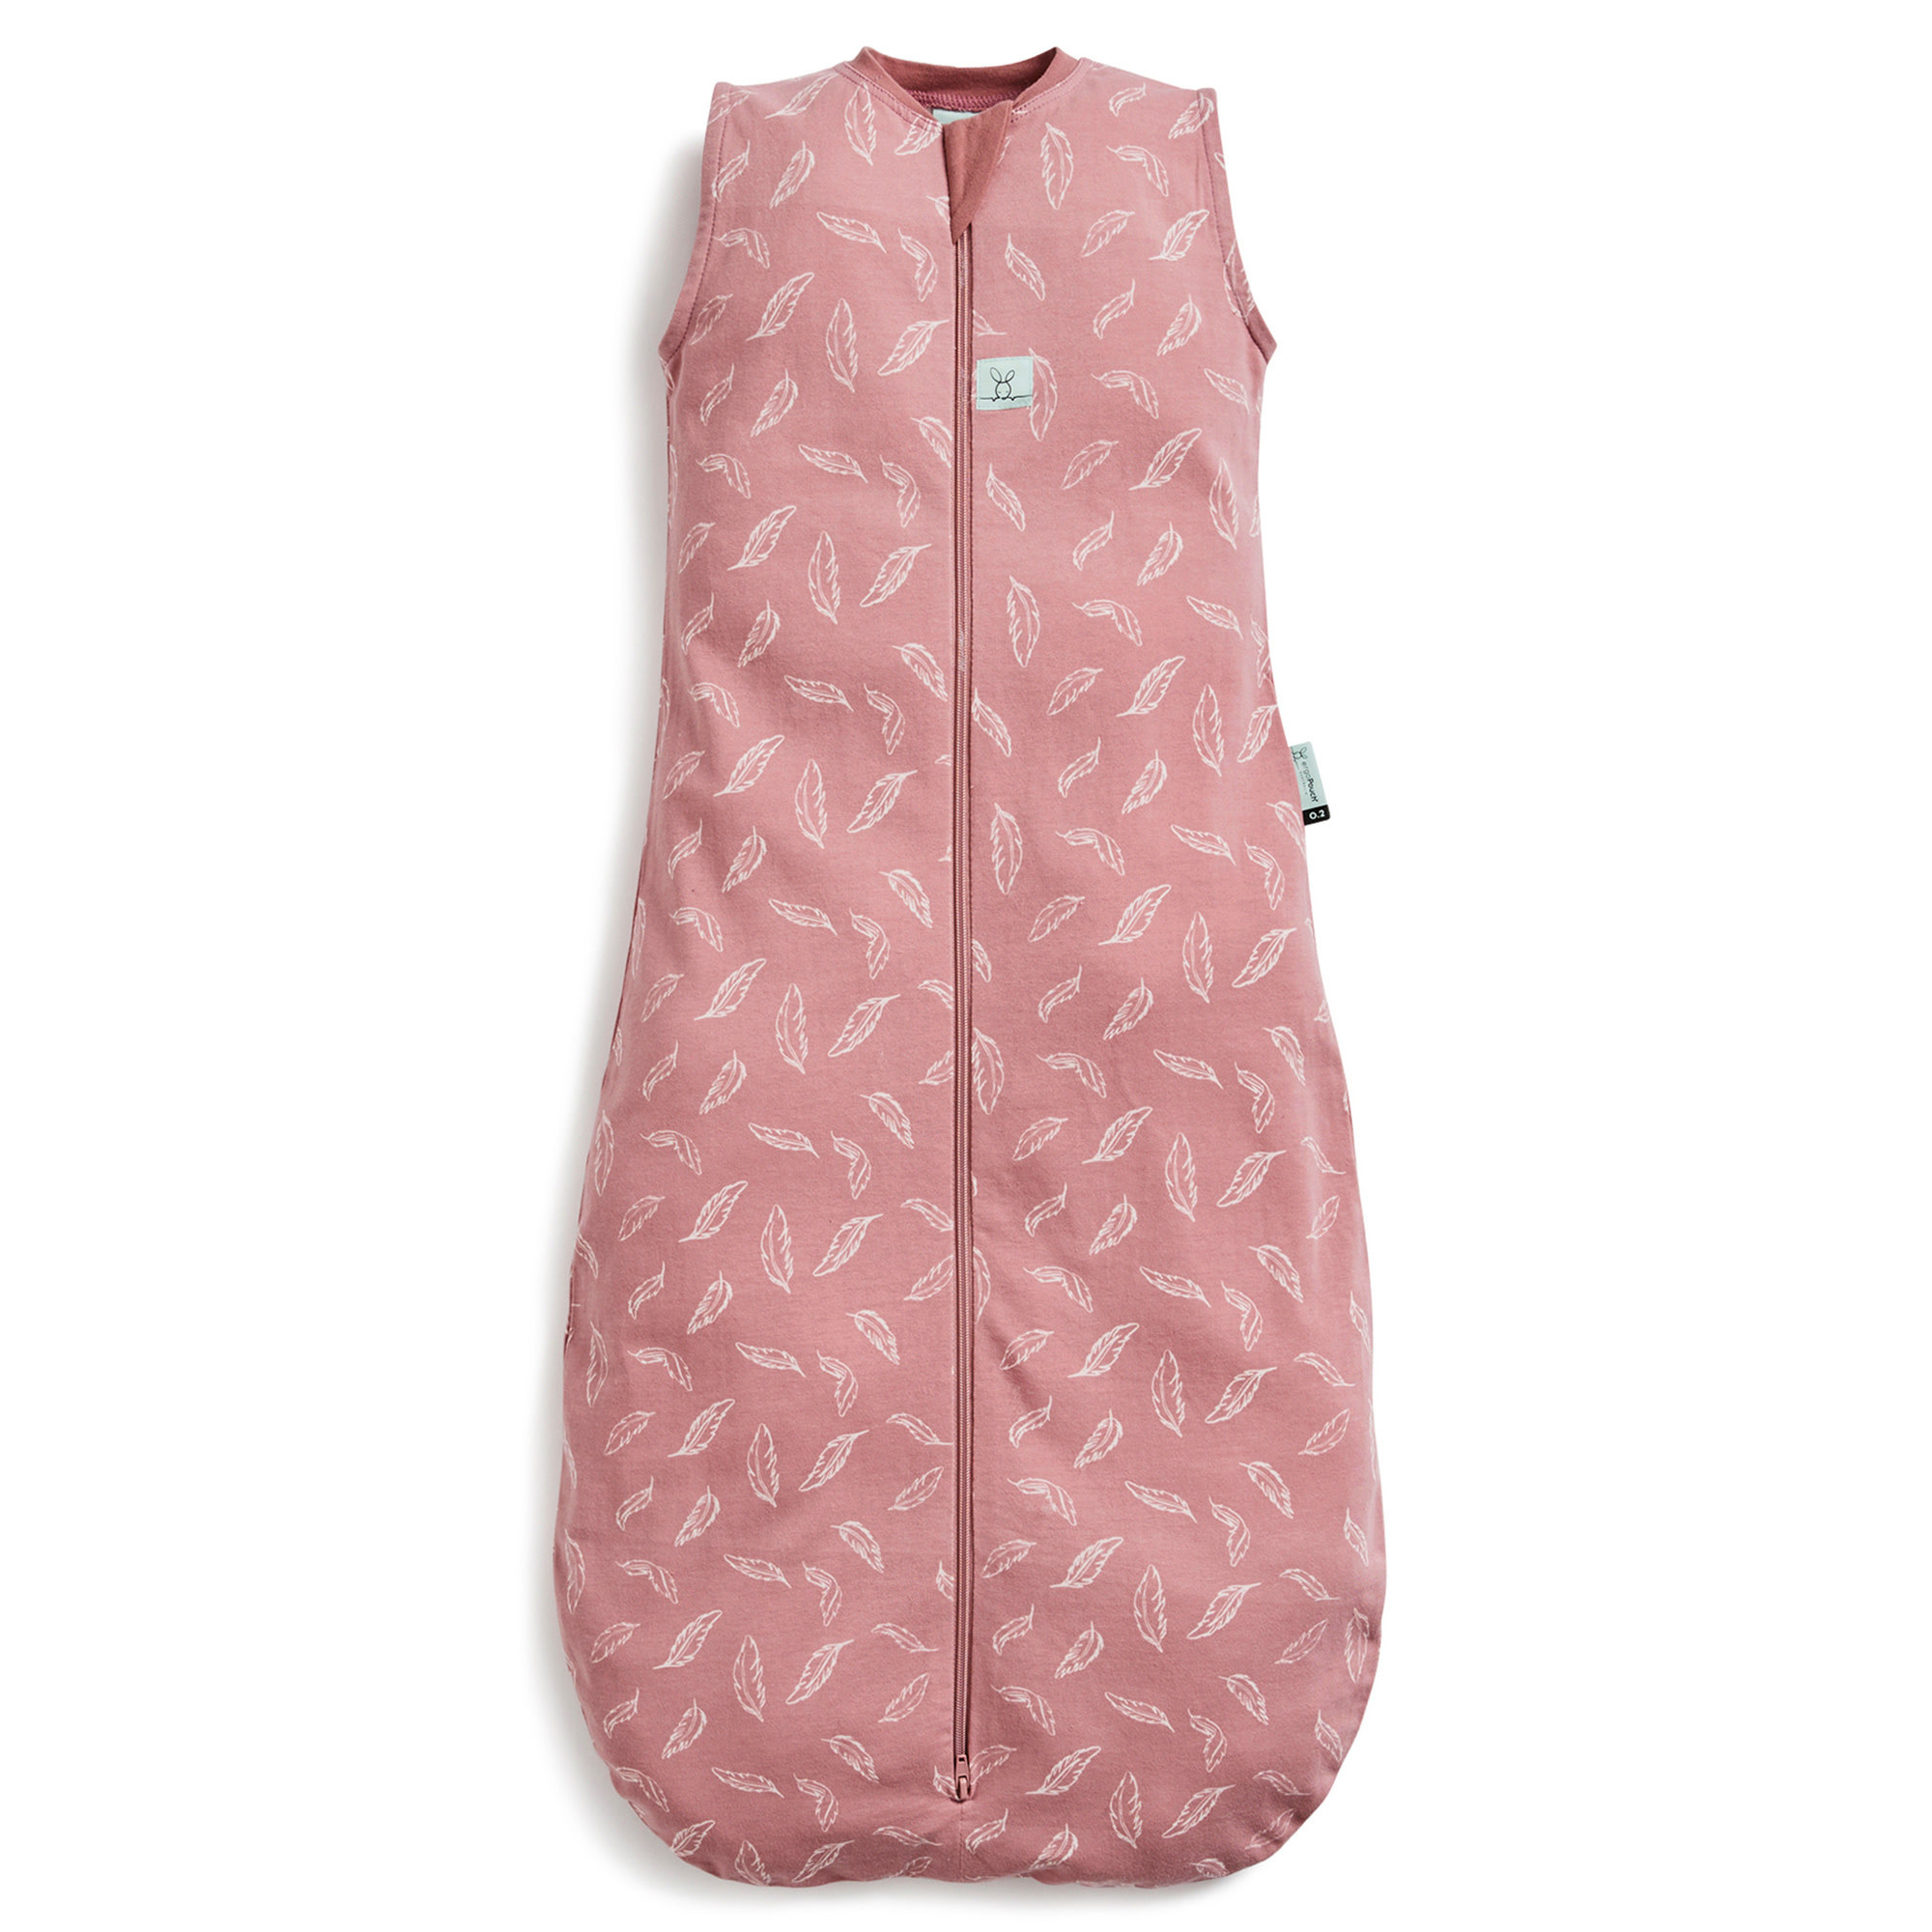 ErgoPouch ErgoCocoon Bamboo Jersey 0.2 Tog